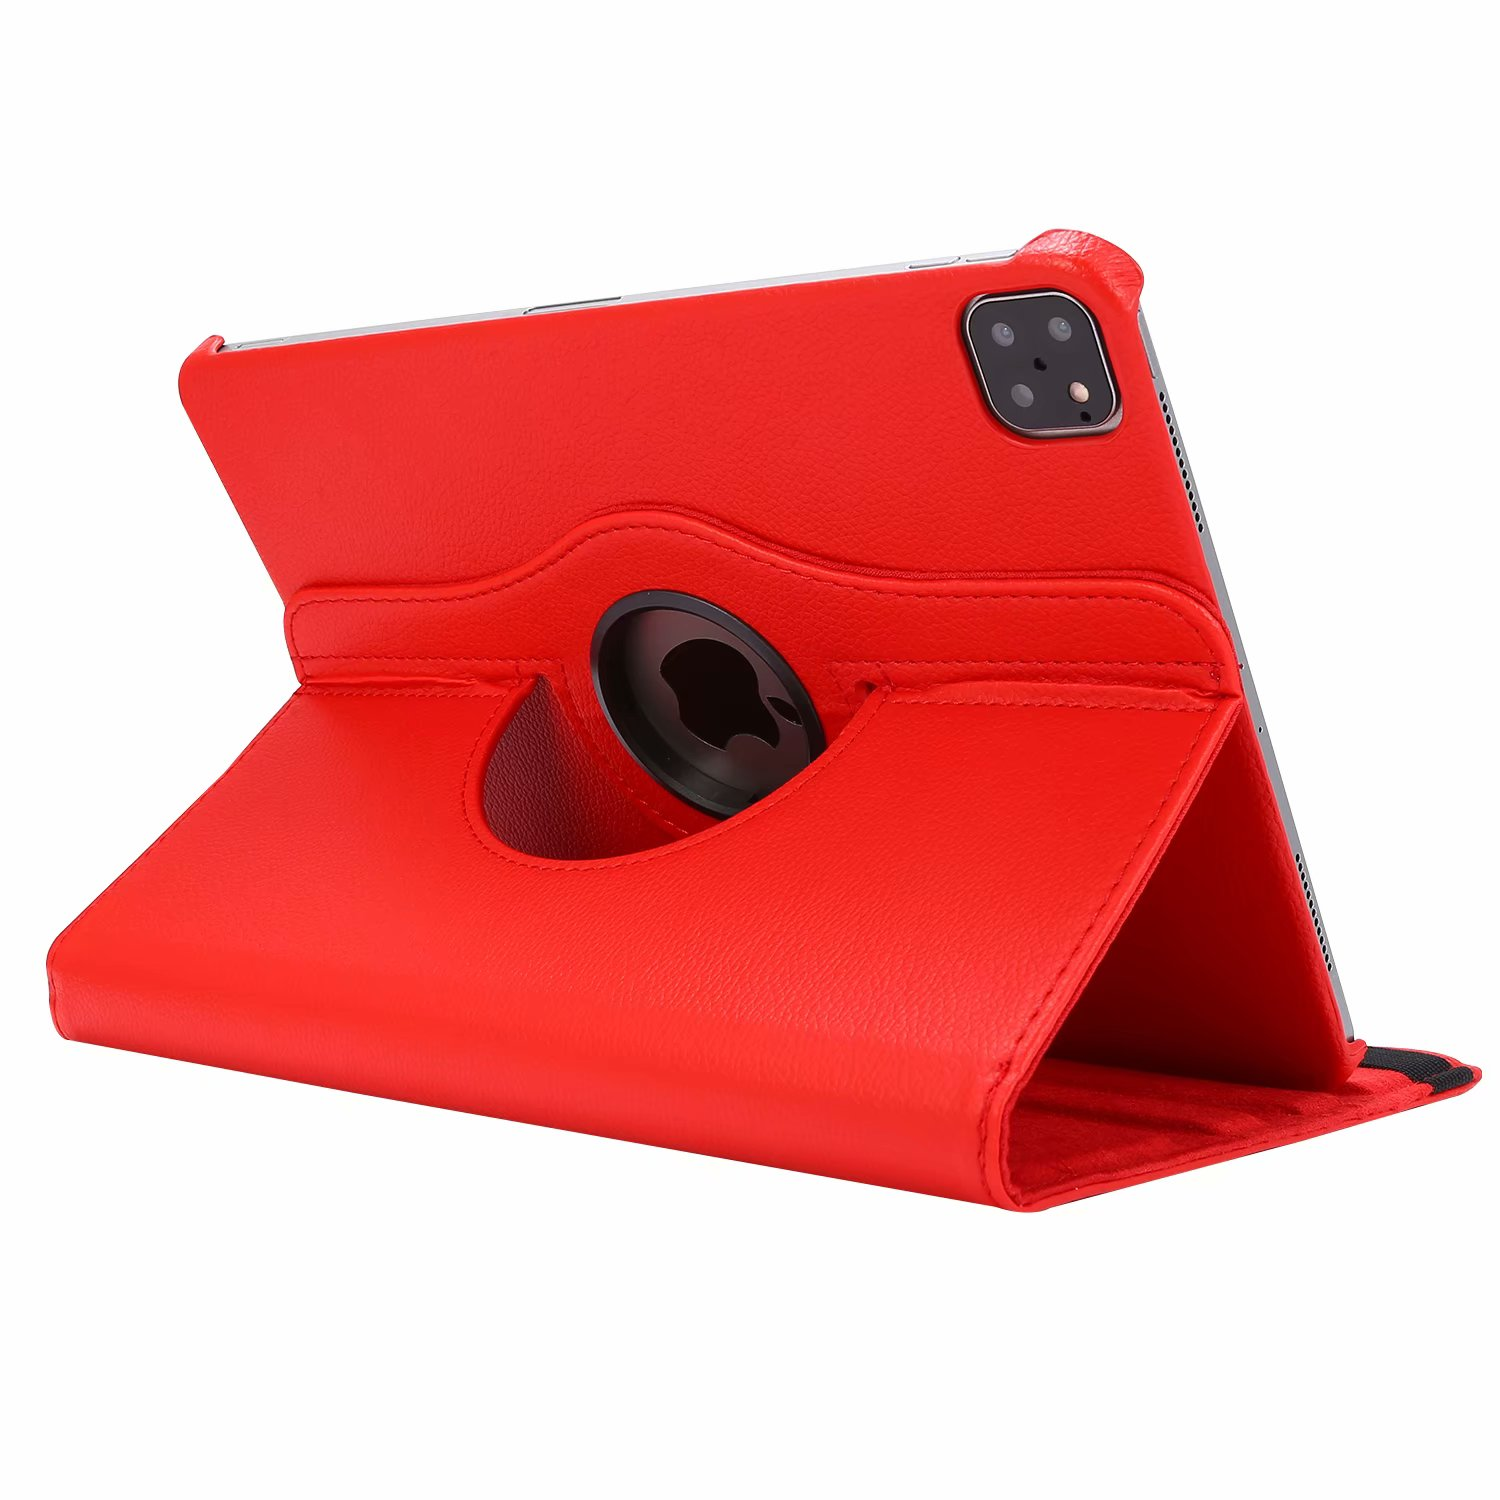 Red Red Case for iPad Pro 11 Cover 2021 2020 2018 A2228 A2068 A2230 A2013 A1934 A1980 360